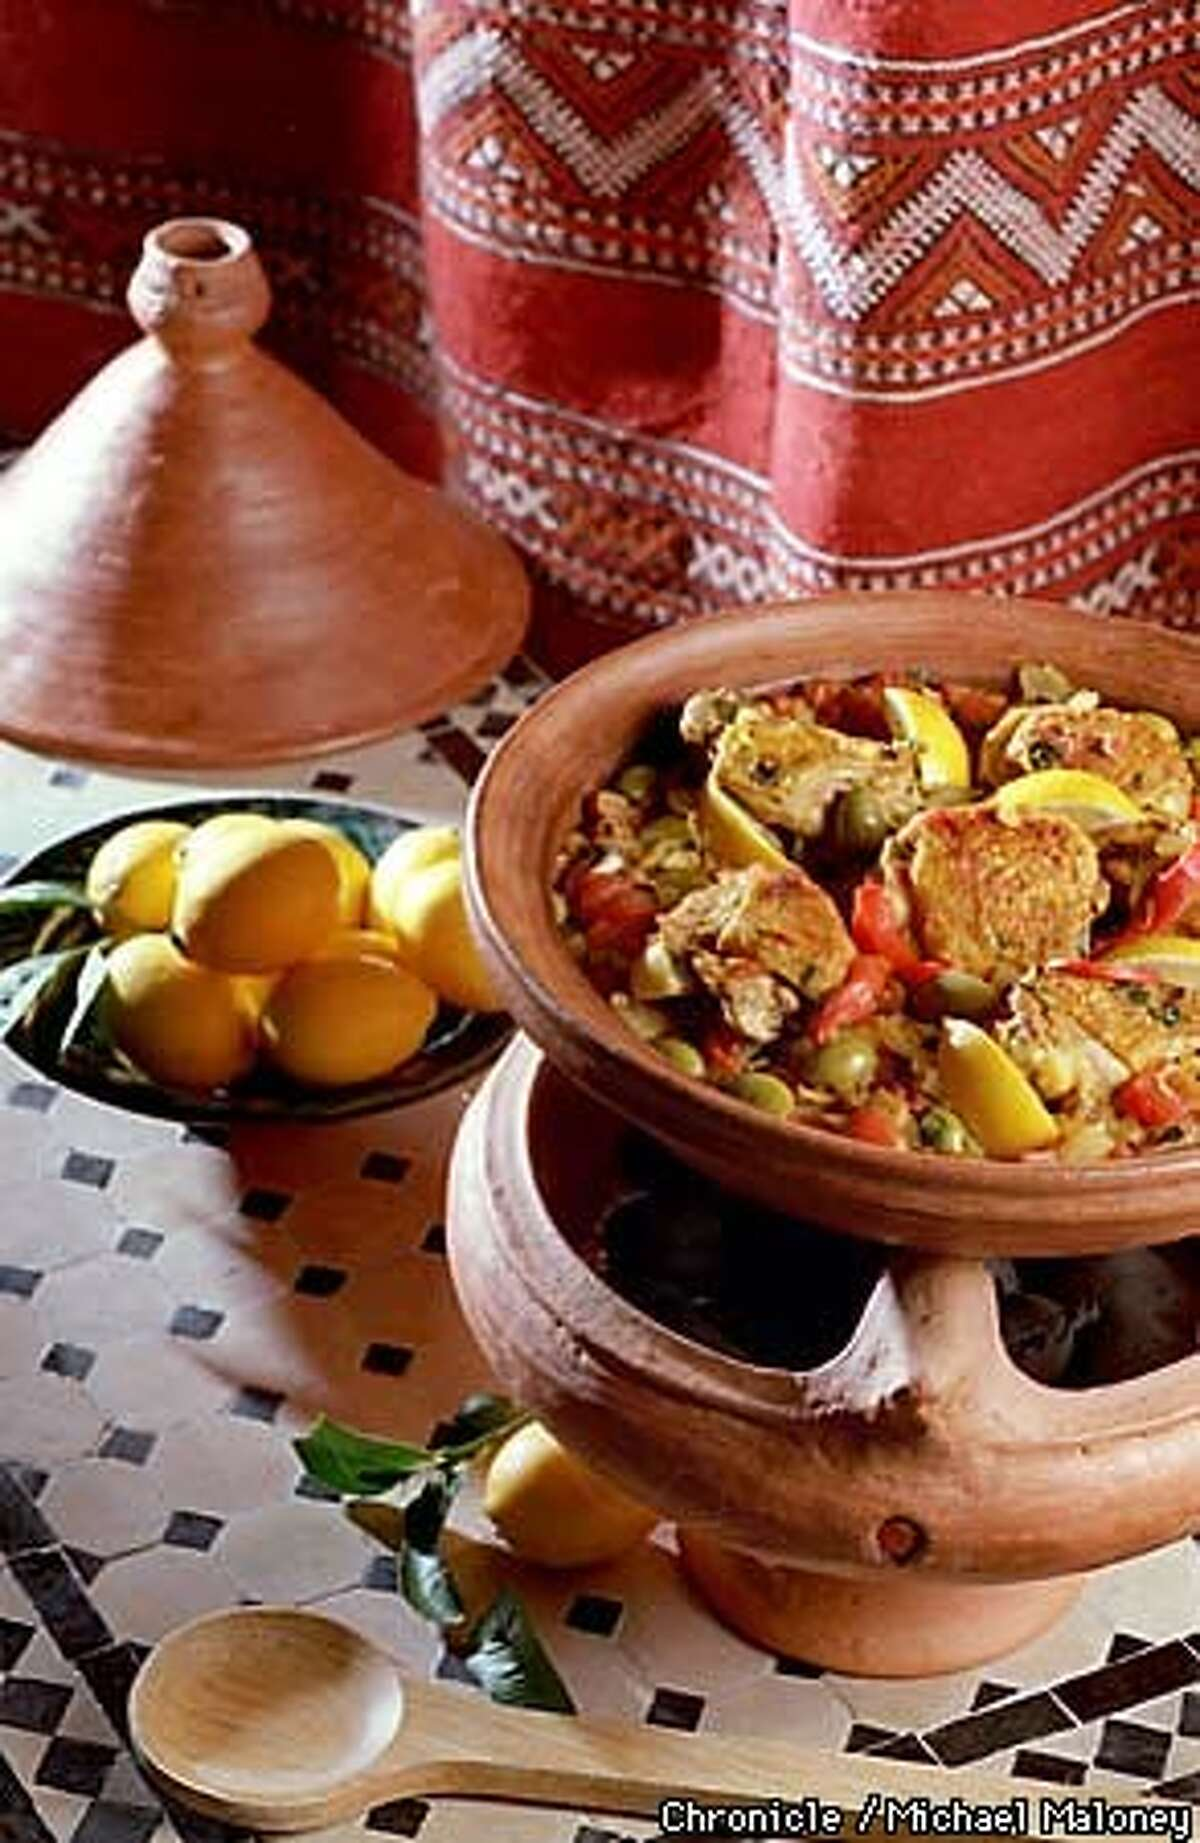 Cinnamon, ginger and cardamom lend exotic flavor and fragrance to a tagine of lamb meatballs in tomato-pea sauce. Chronicle Photo by Michael Maloney